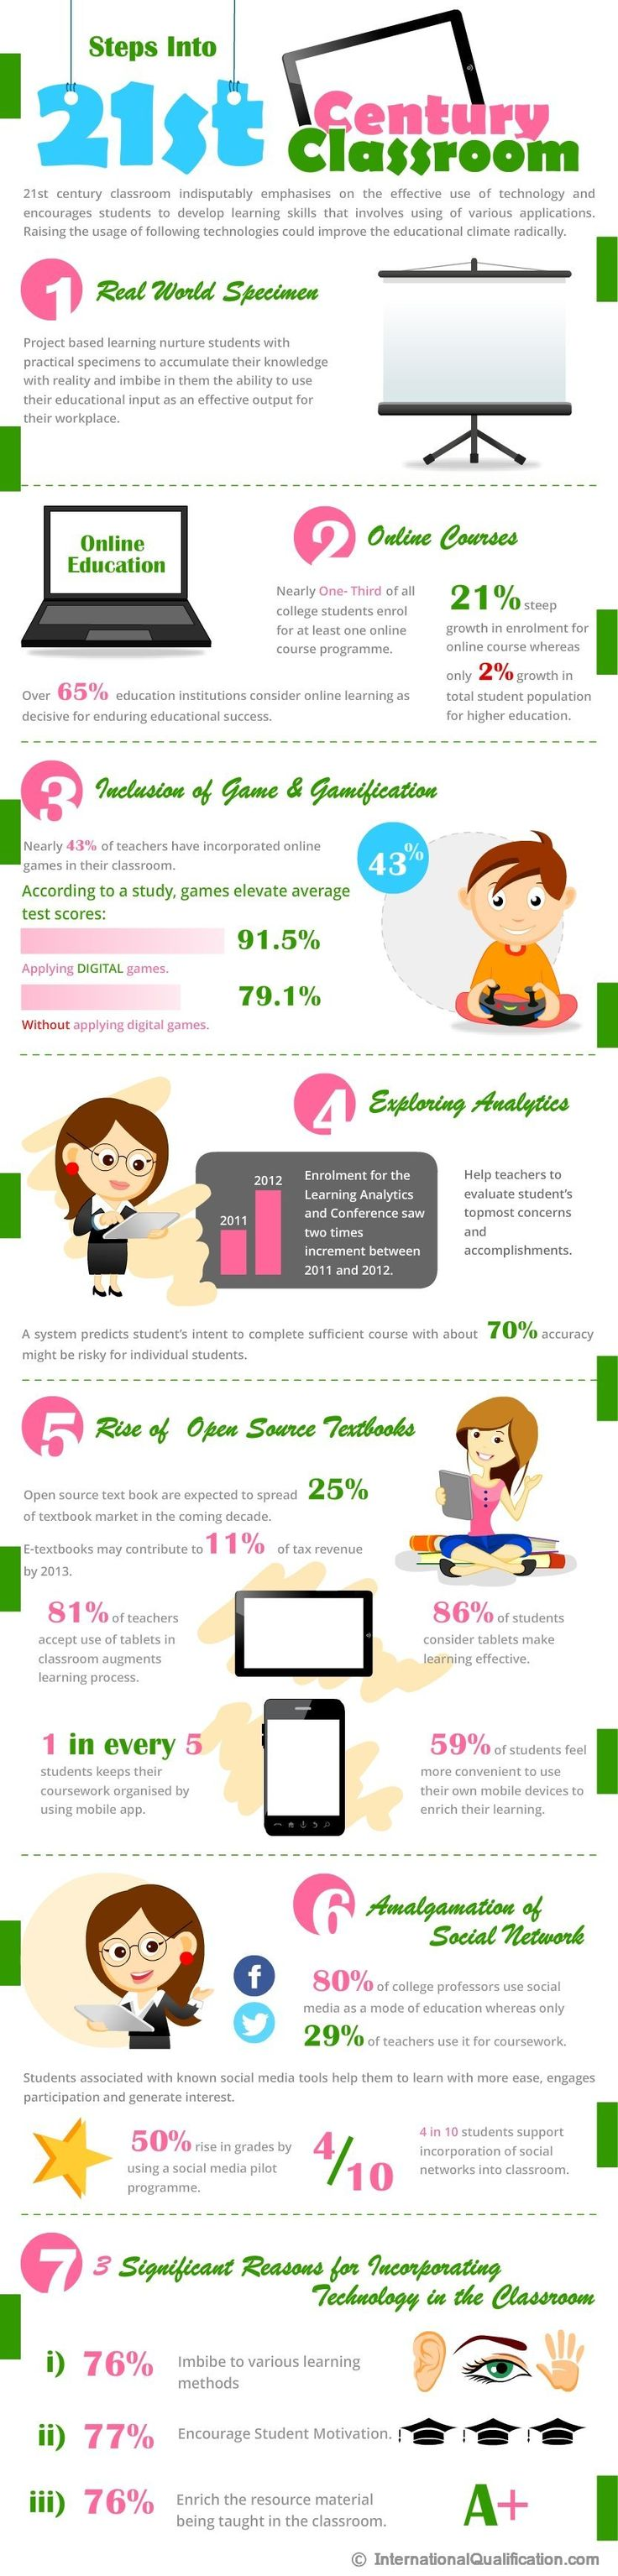 Steps into the 21st Century Classroom [Infographic]